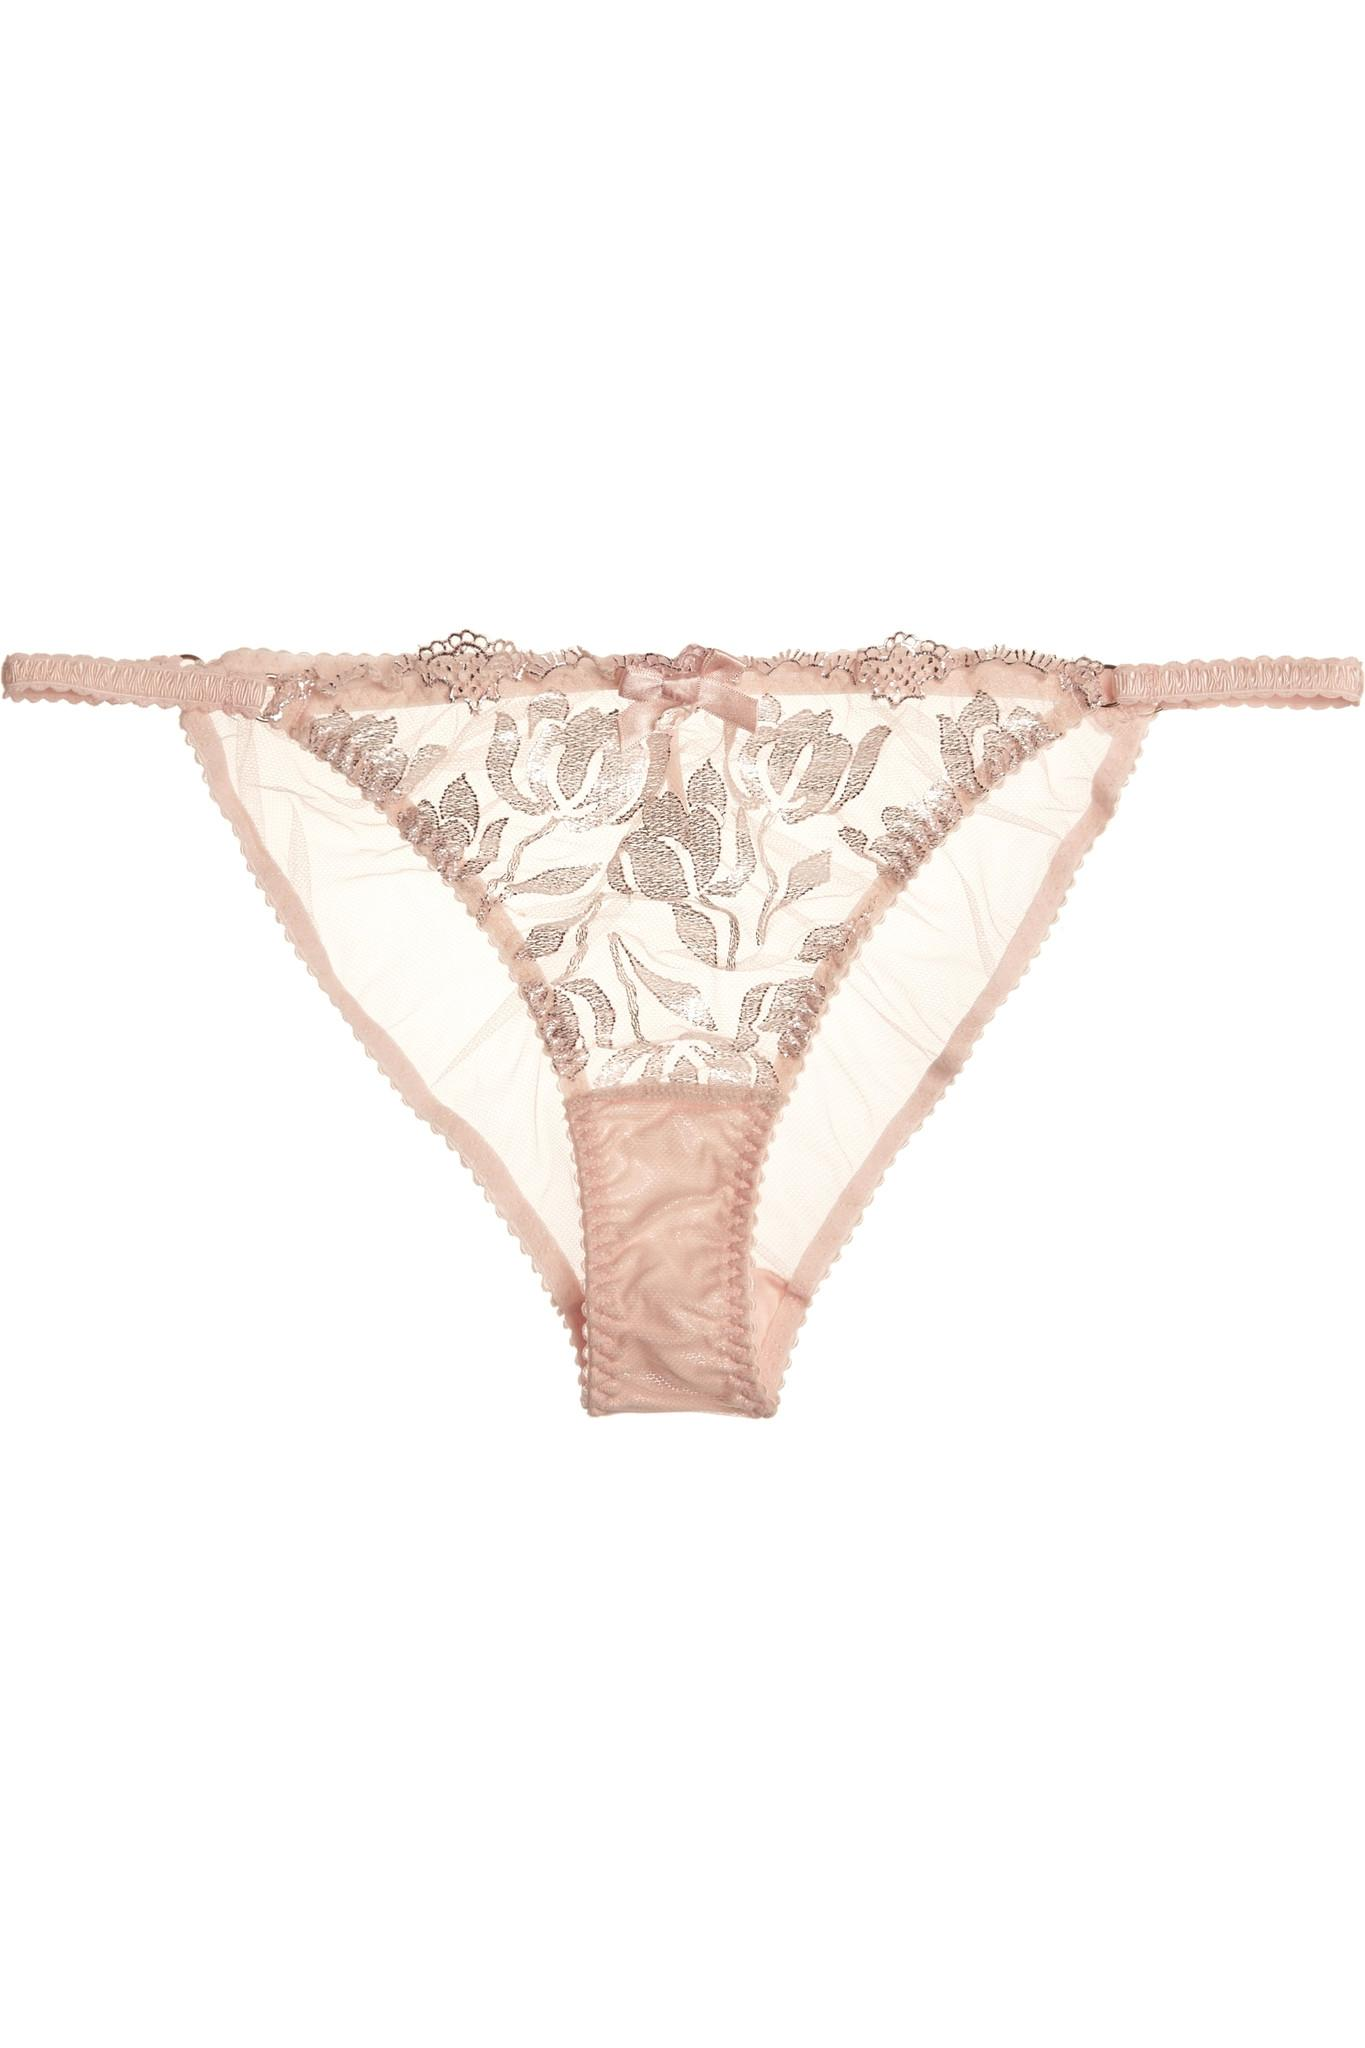 9b7b86d9a4 Lyst - Agent Provocateur Sparkle Embroidered Tulle Briefs in Pink